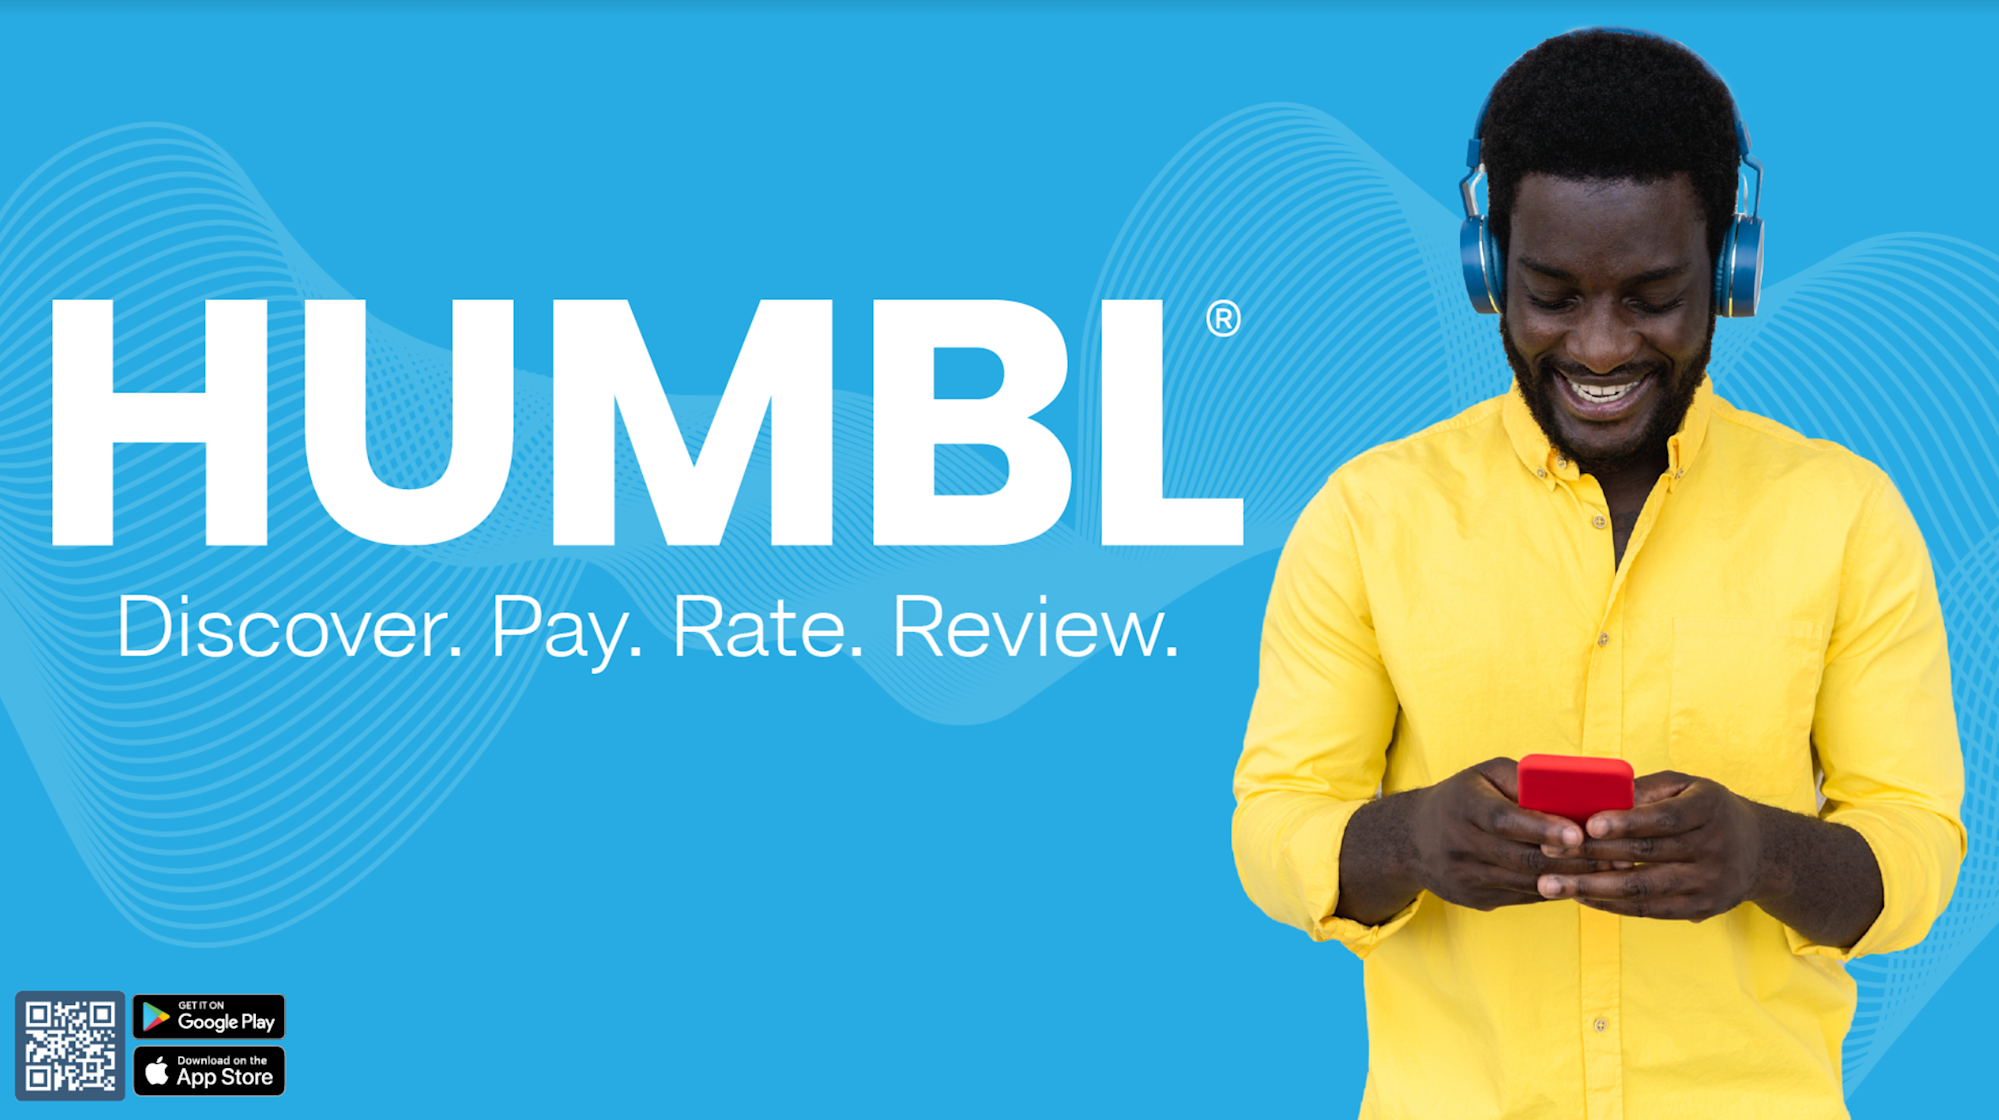 HUMBL® Announces Launch of HUMBL Pay Mobile Application